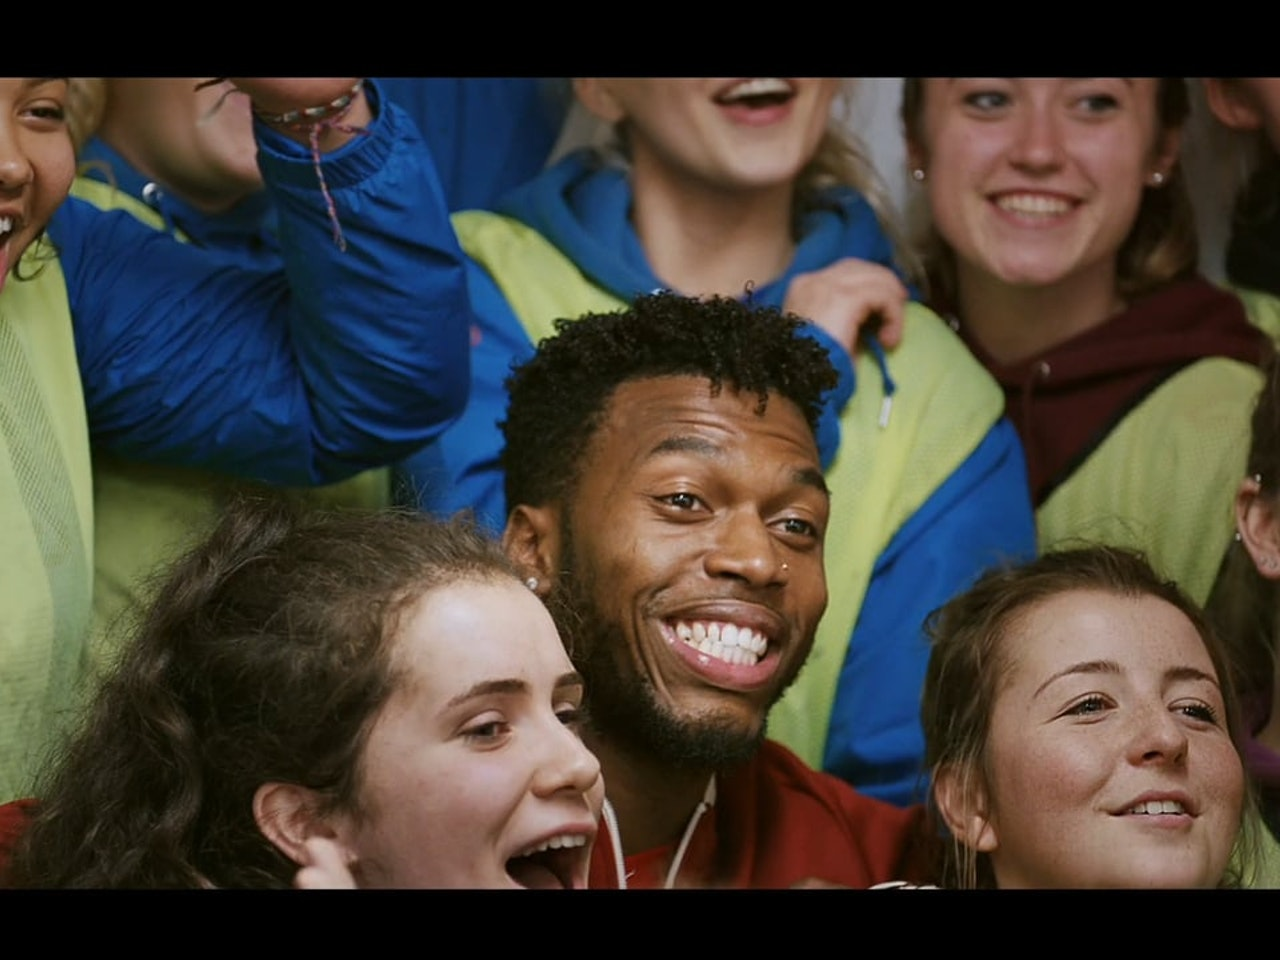 SKYPE. Surprise team call, with Liverpool FC Daniel Sturridge.